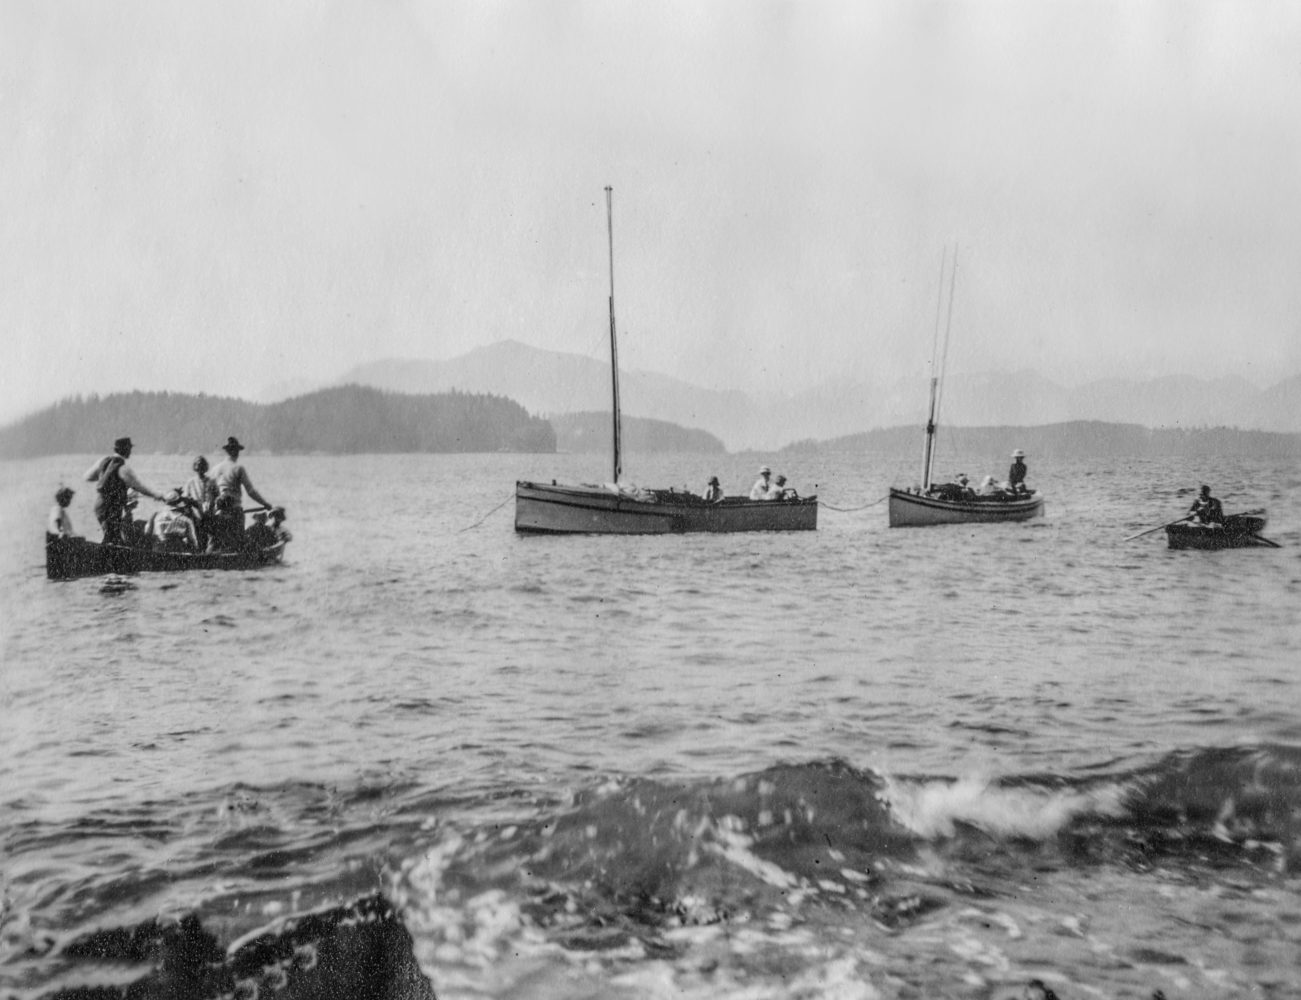 #1 - Boats for a picnic arriving at Brady's Beach, 1919